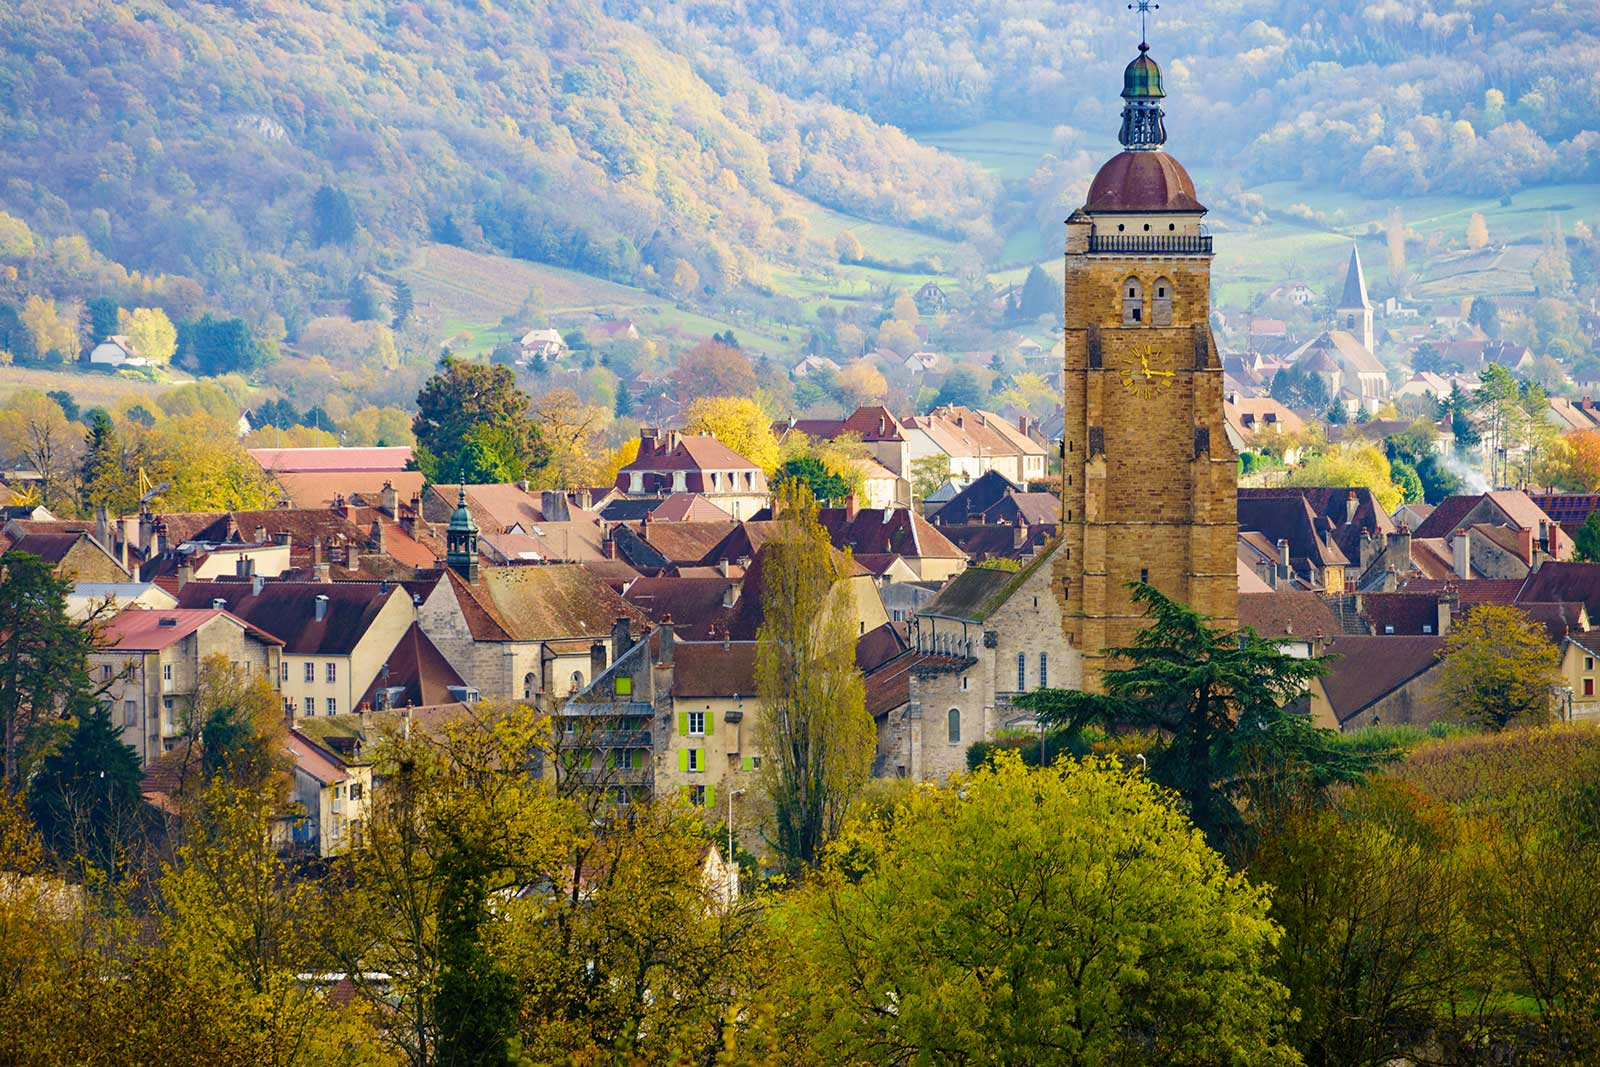 The town of Arbois is at the center of wine production in the Jura, and lends its namesake to the Arbois AOC, of which Tissot has several wines. (Stock photo)